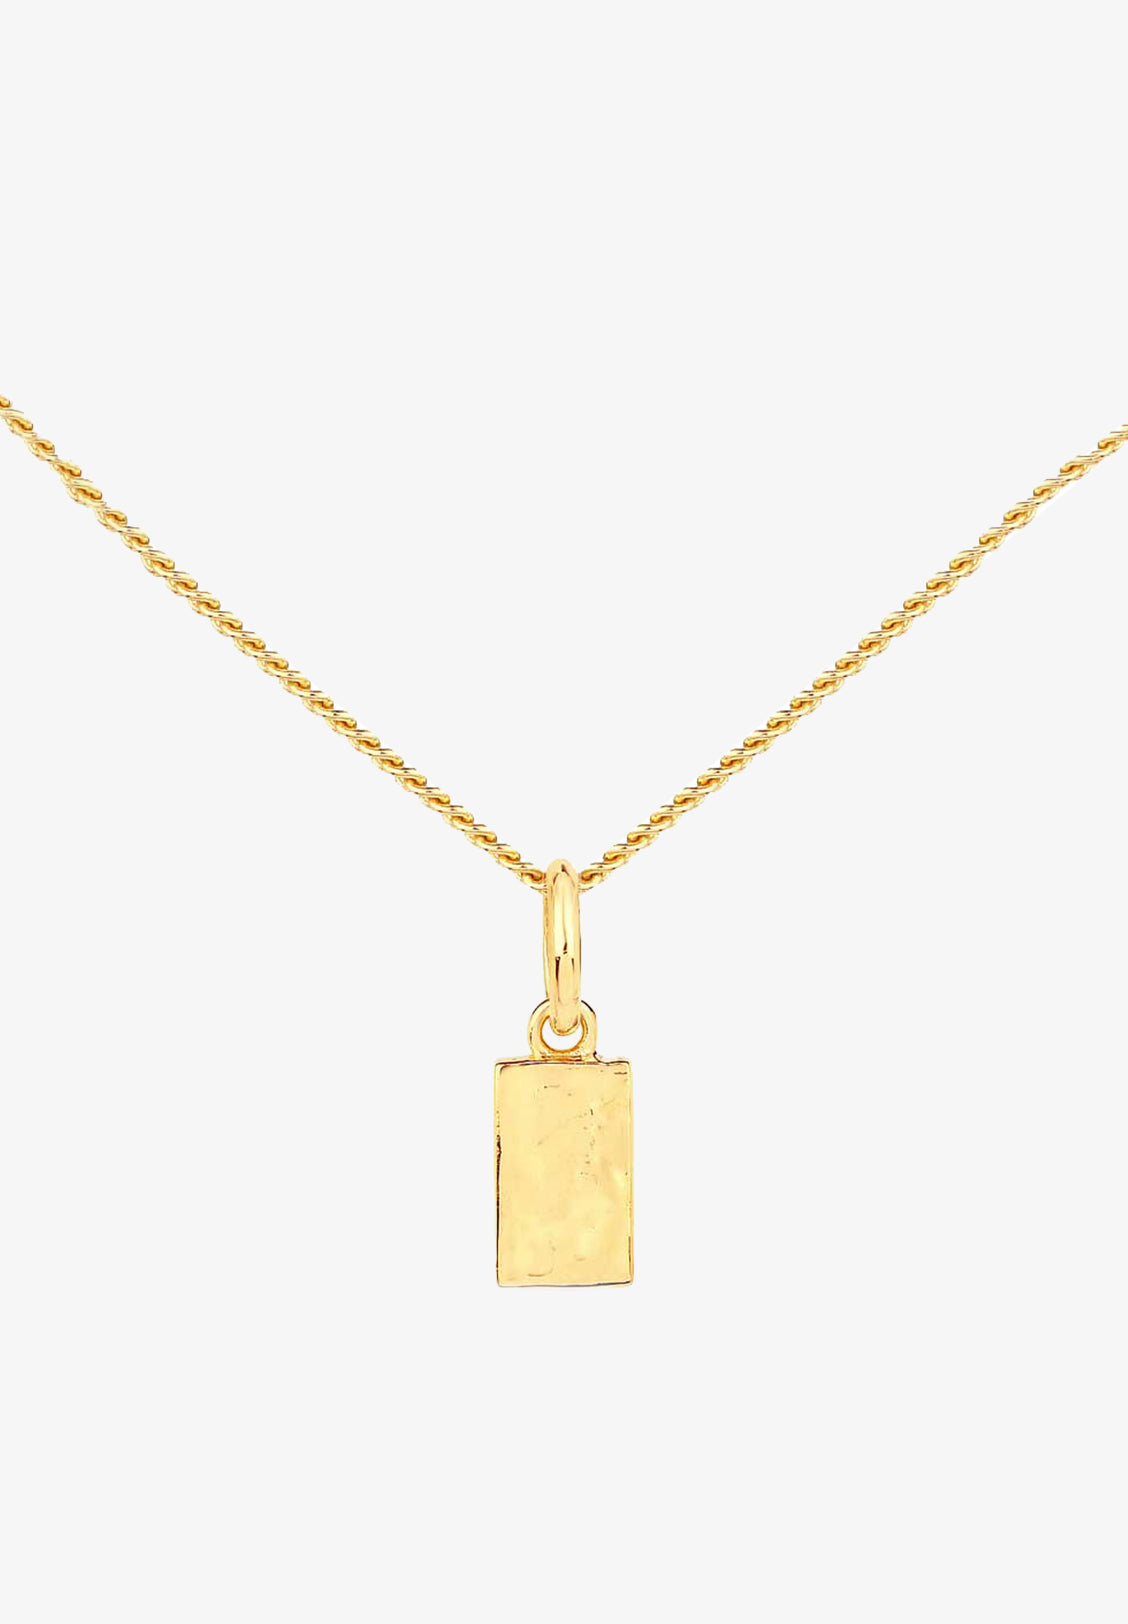 FLASH - INGOT NECKLACE, 14K GOLD VERMEIL